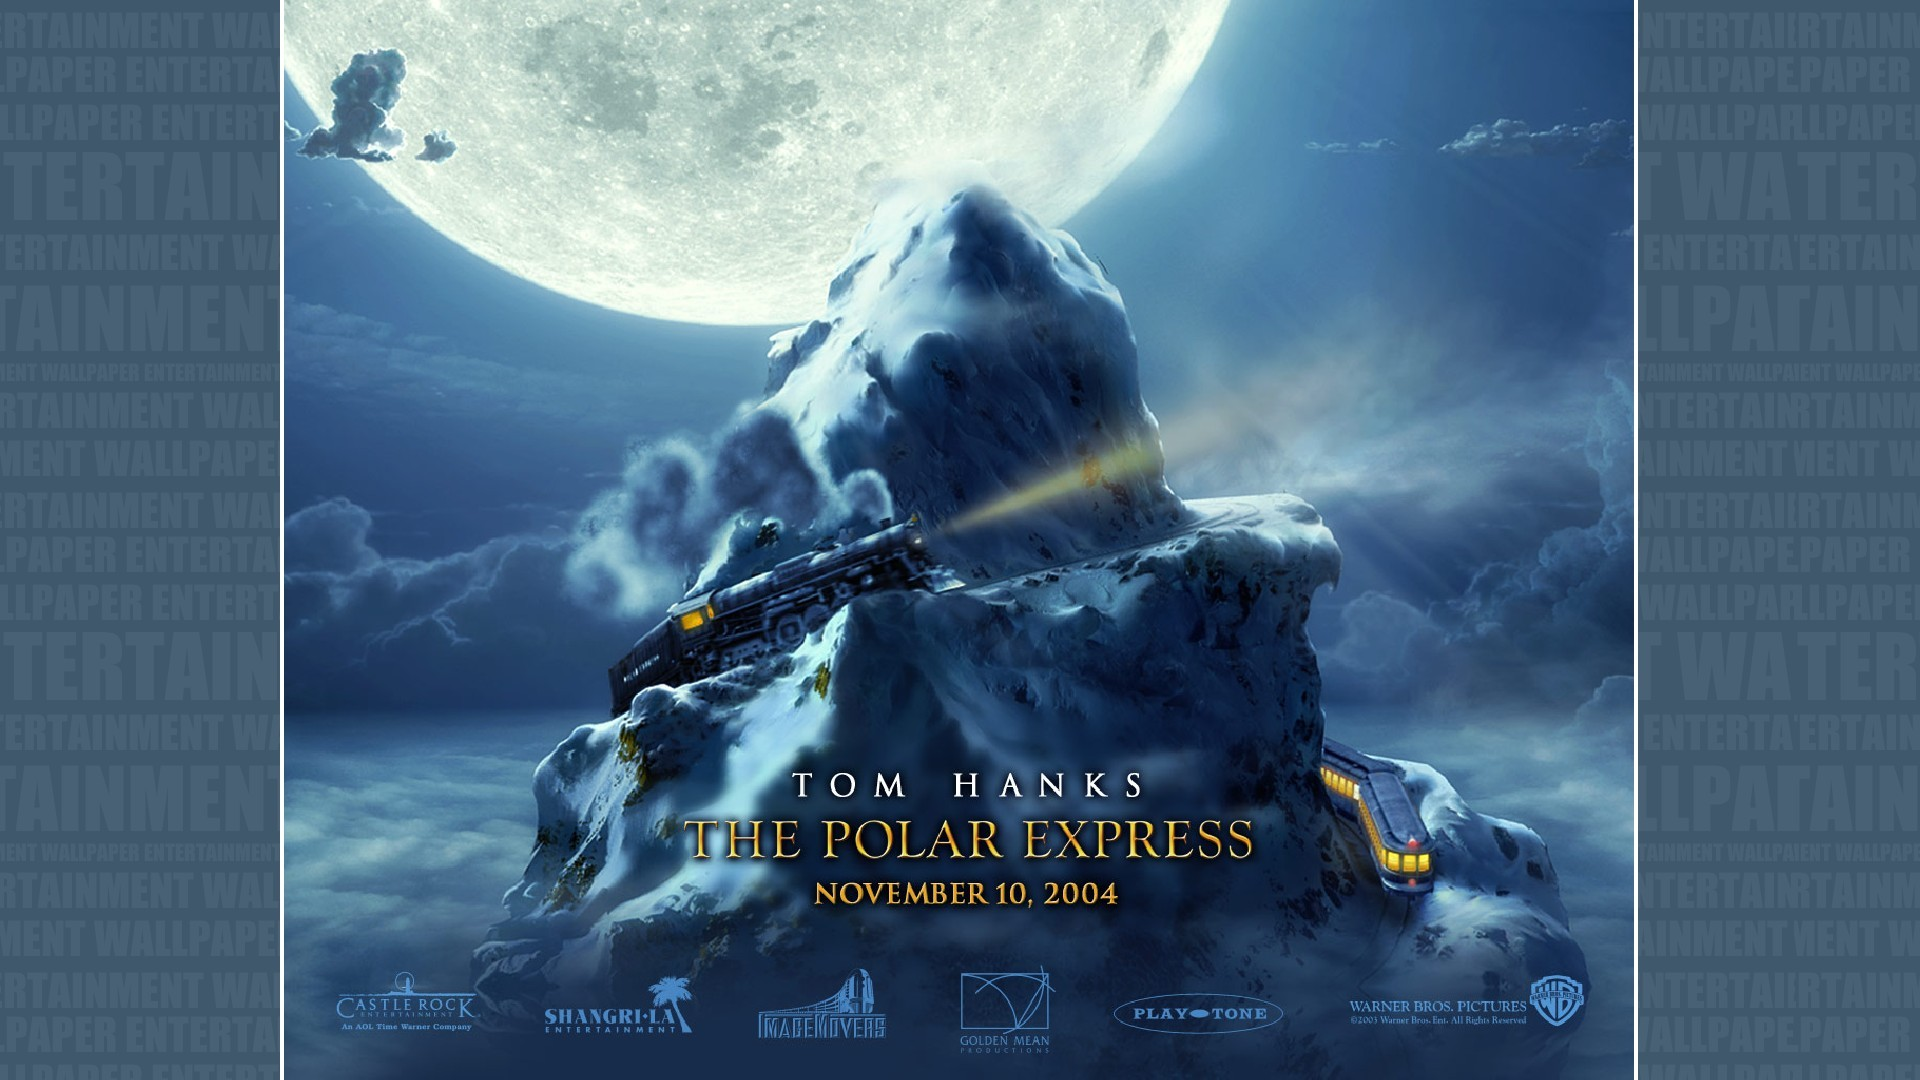 1920x1080 The Polar Express Wallpaper - Original size, download now.